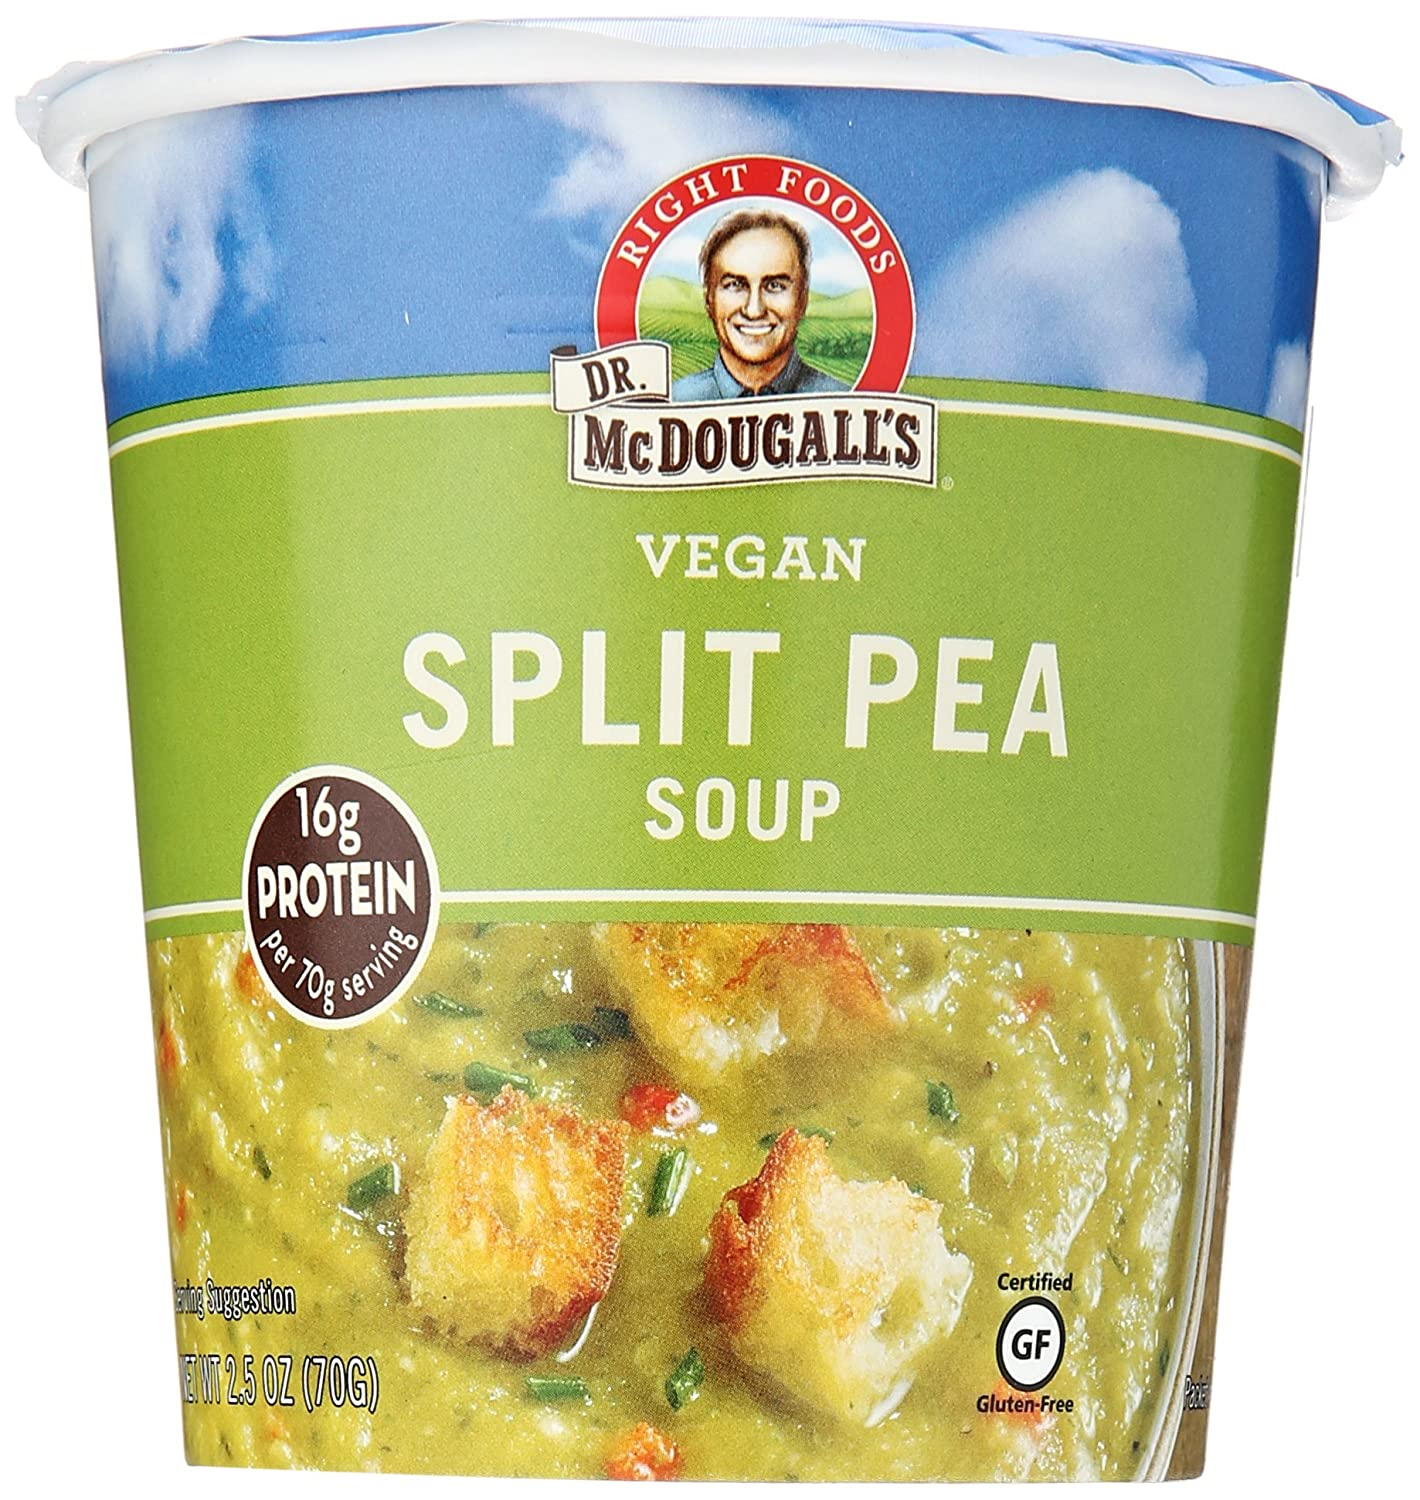 Dr. McDougall's Soup Right Foods